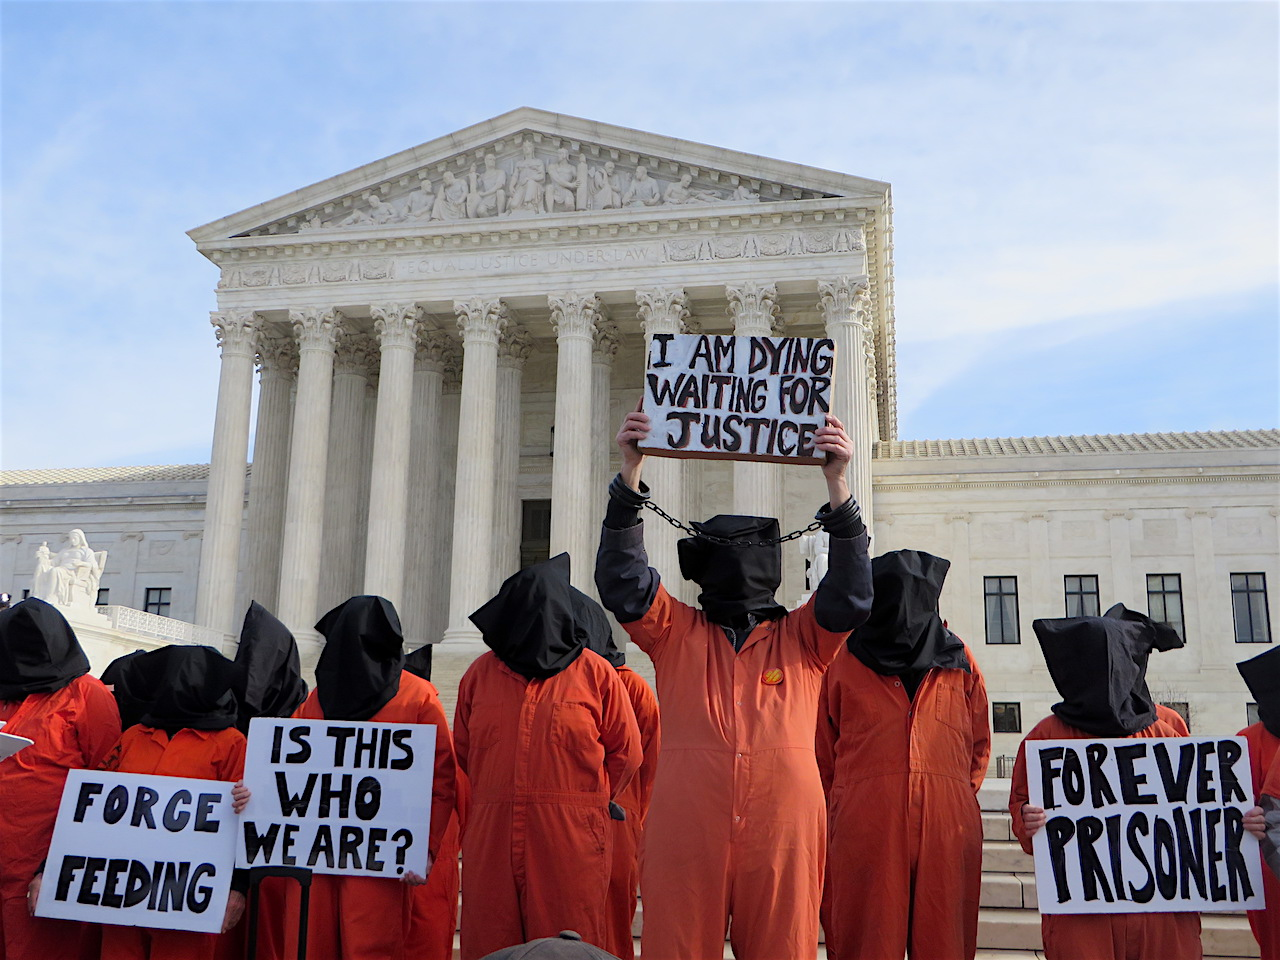 Protestors with Witness Against Torture outside the Supreme Court calling for the closure of Guantanamo on Jan. 11, 2017, the 15th anniversary of the prison's opening (Photo: Andy Worthington).